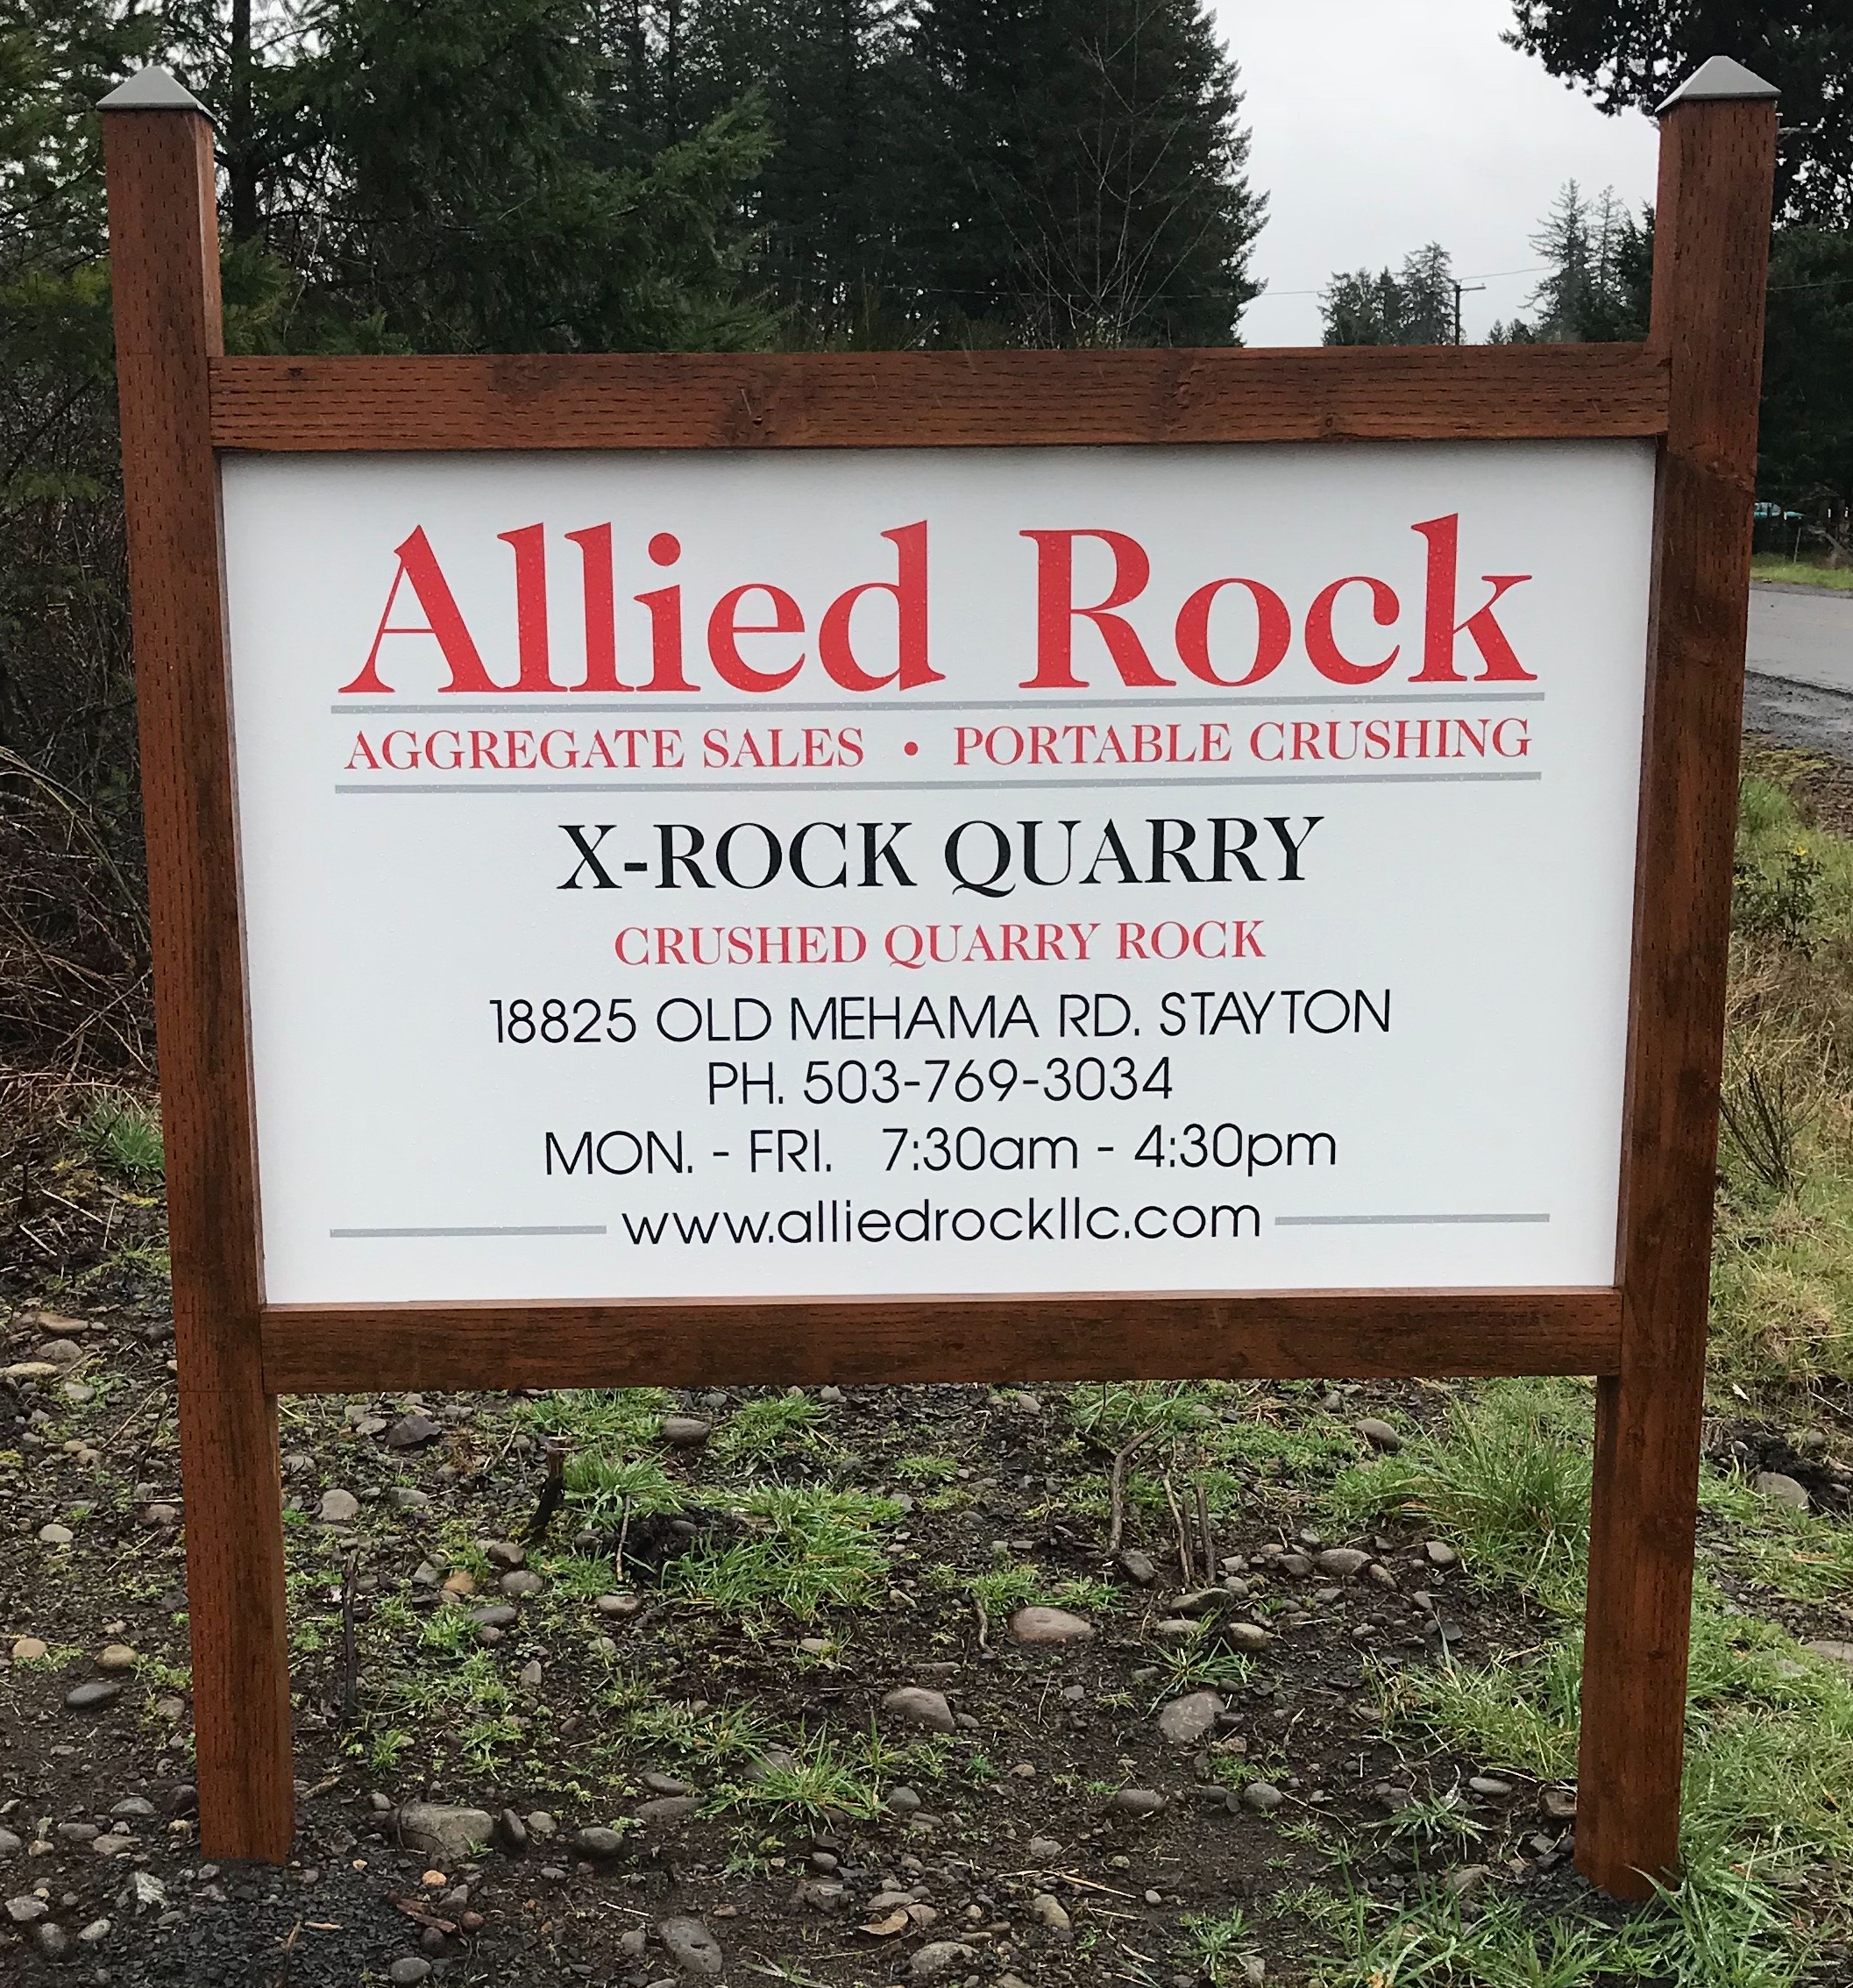 Allied Rock acquired the X-Rock Quarry